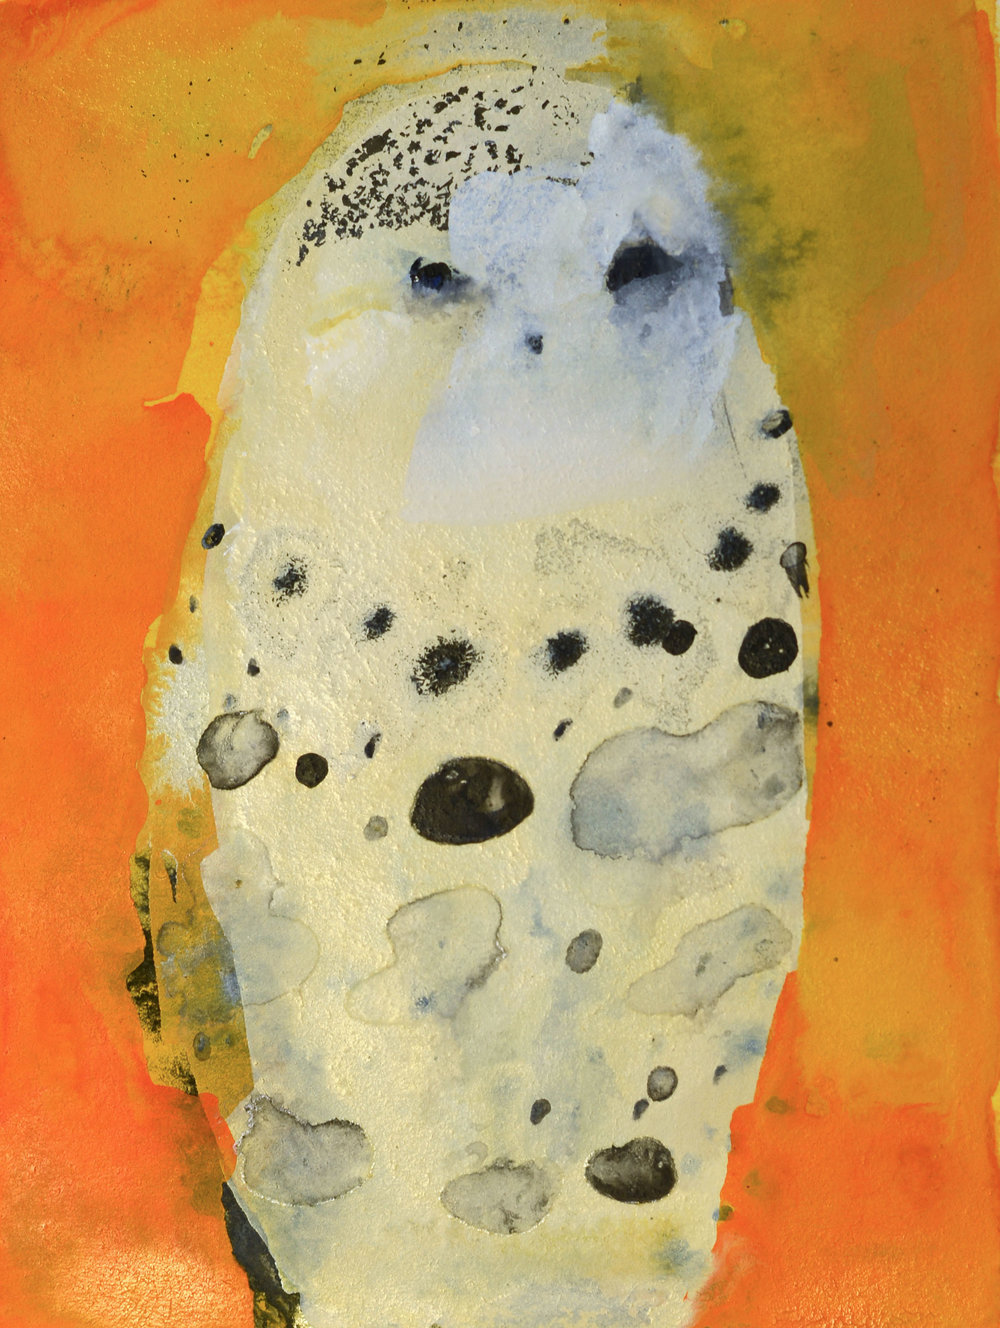 Snowy Owl no. 2_4x3 inset on 11x 7.5 paper.jpg